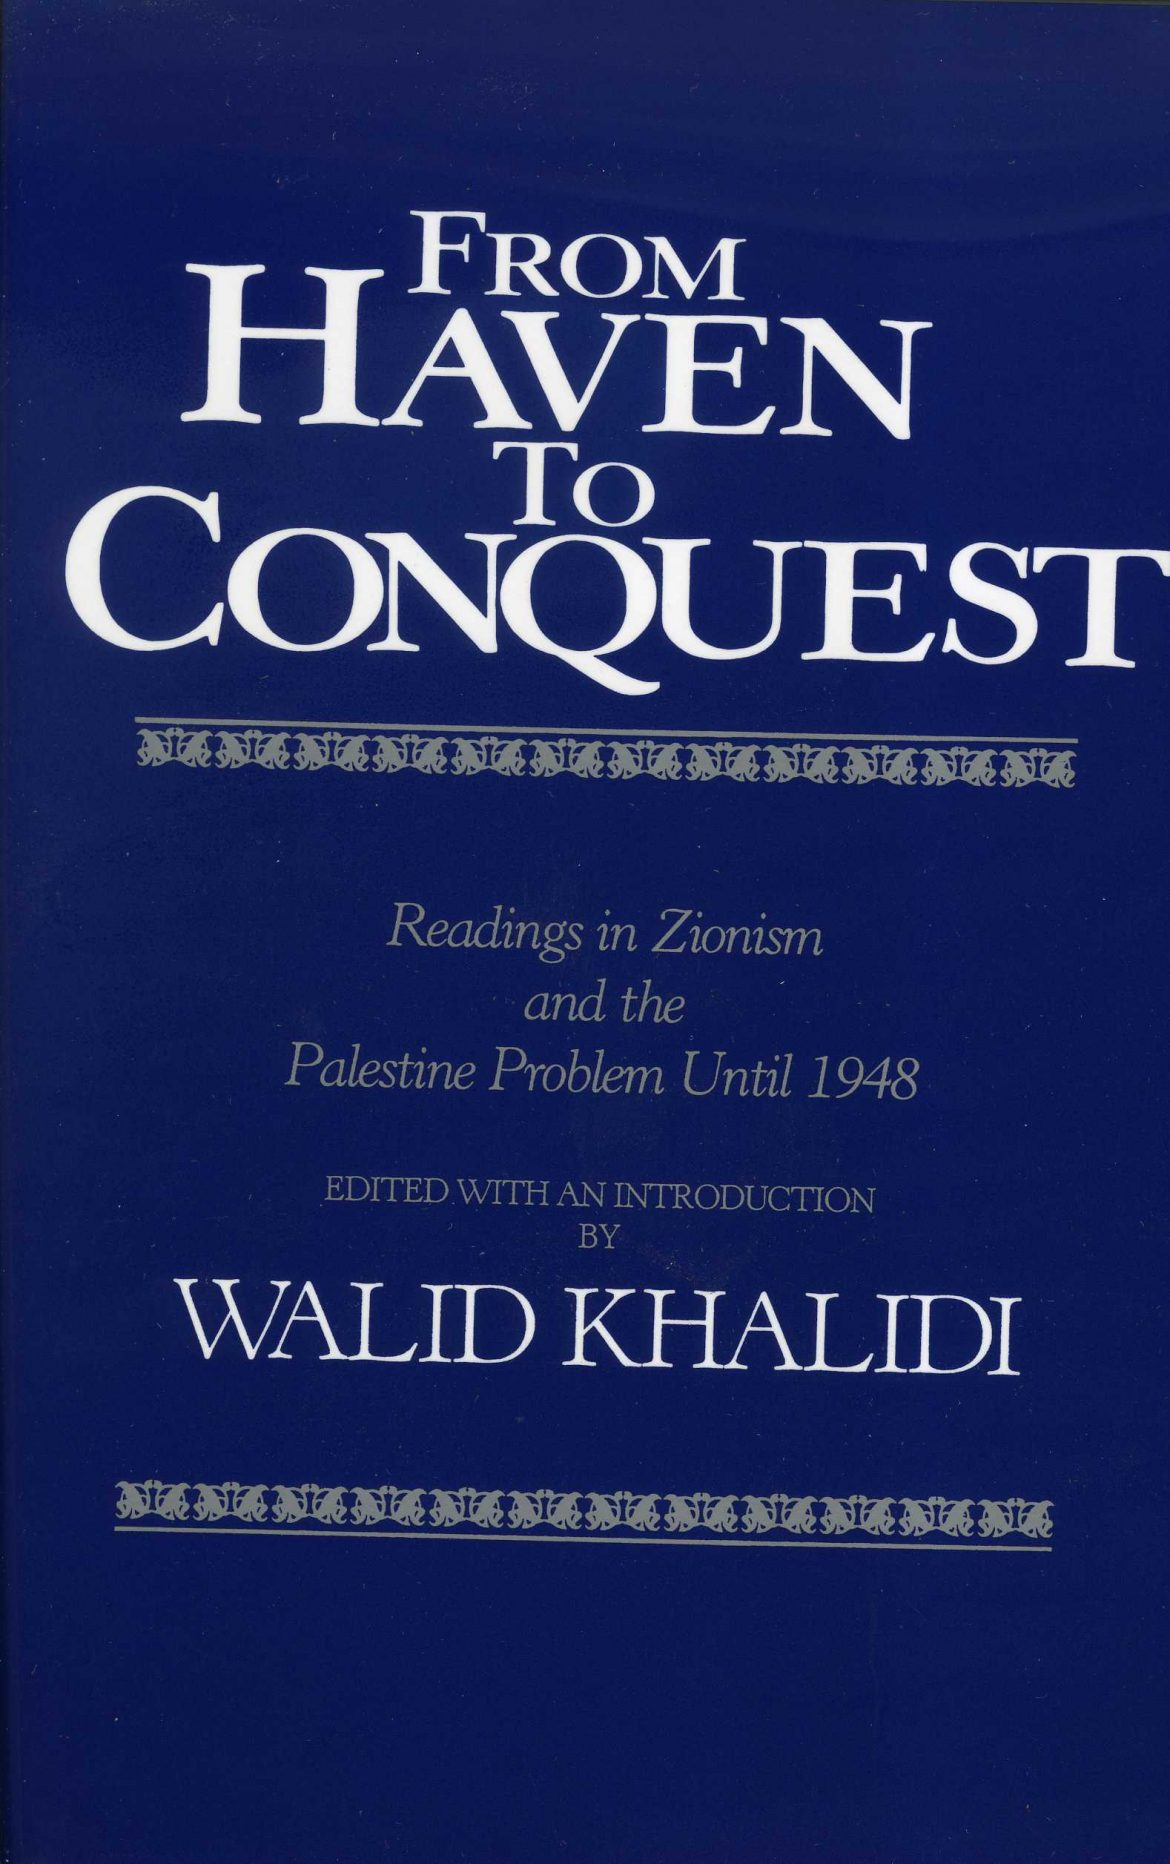 From Haven to Conquest: Readings in Zionism and the Palestine Problem until 1948